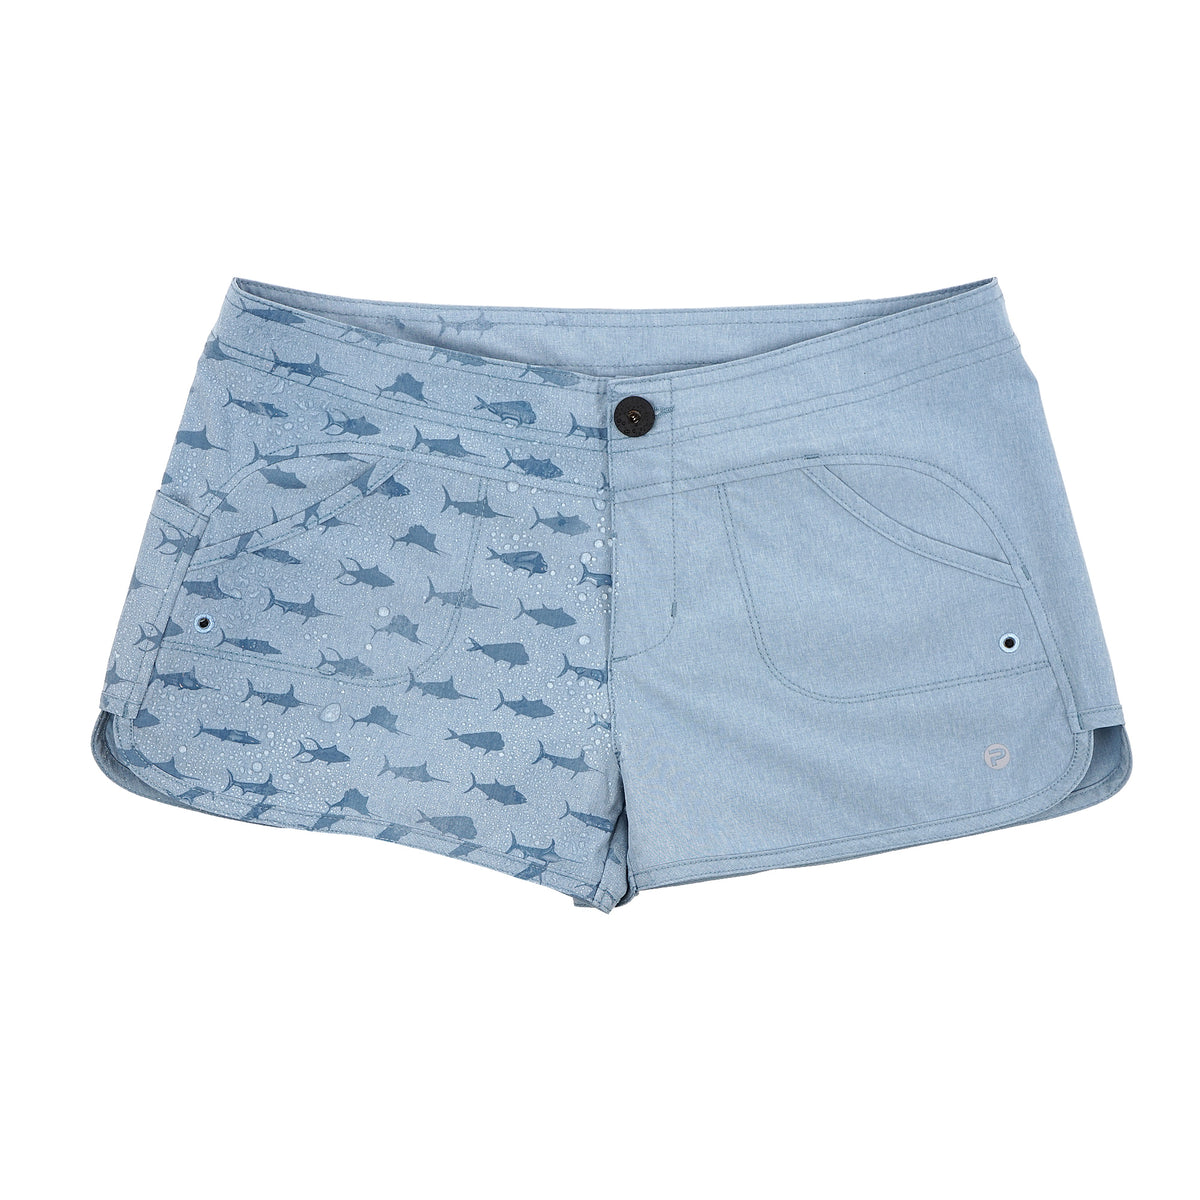 Deep Sea Hybrid Fishing Shorts - Womens Big Image - 5